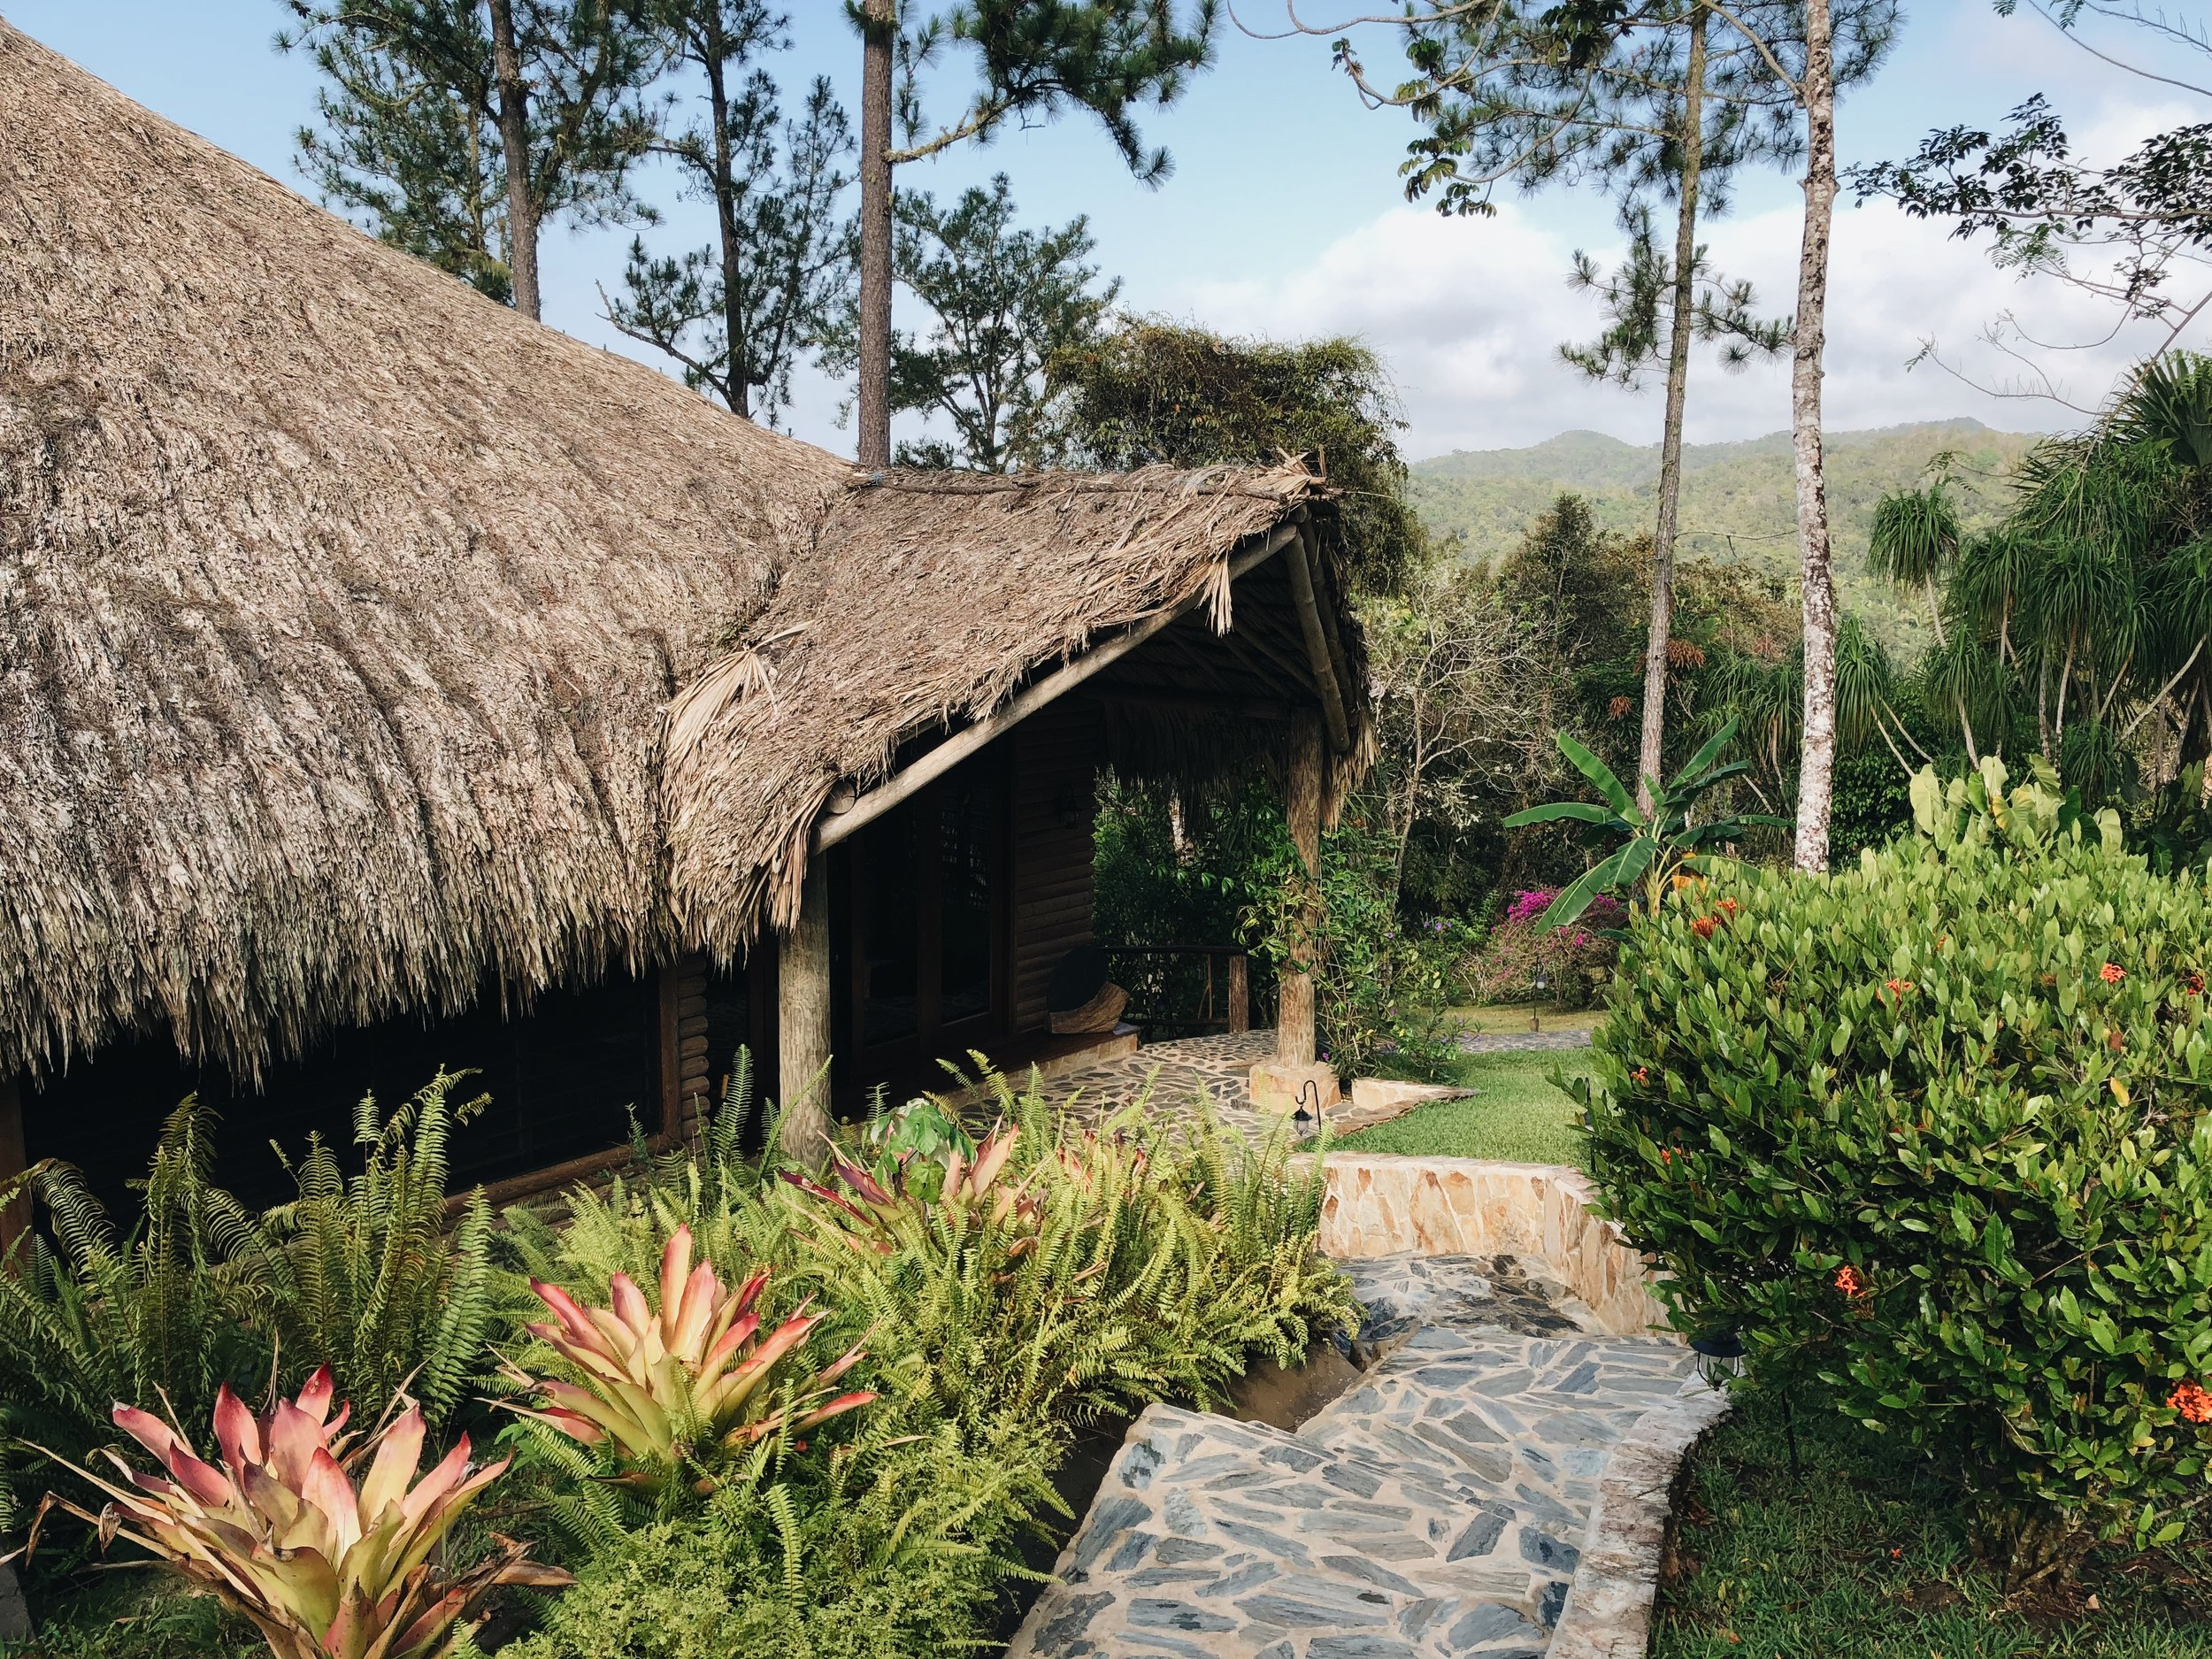 GAIA Riverlodge, Belize Travel Guide by Everyday Pursuits